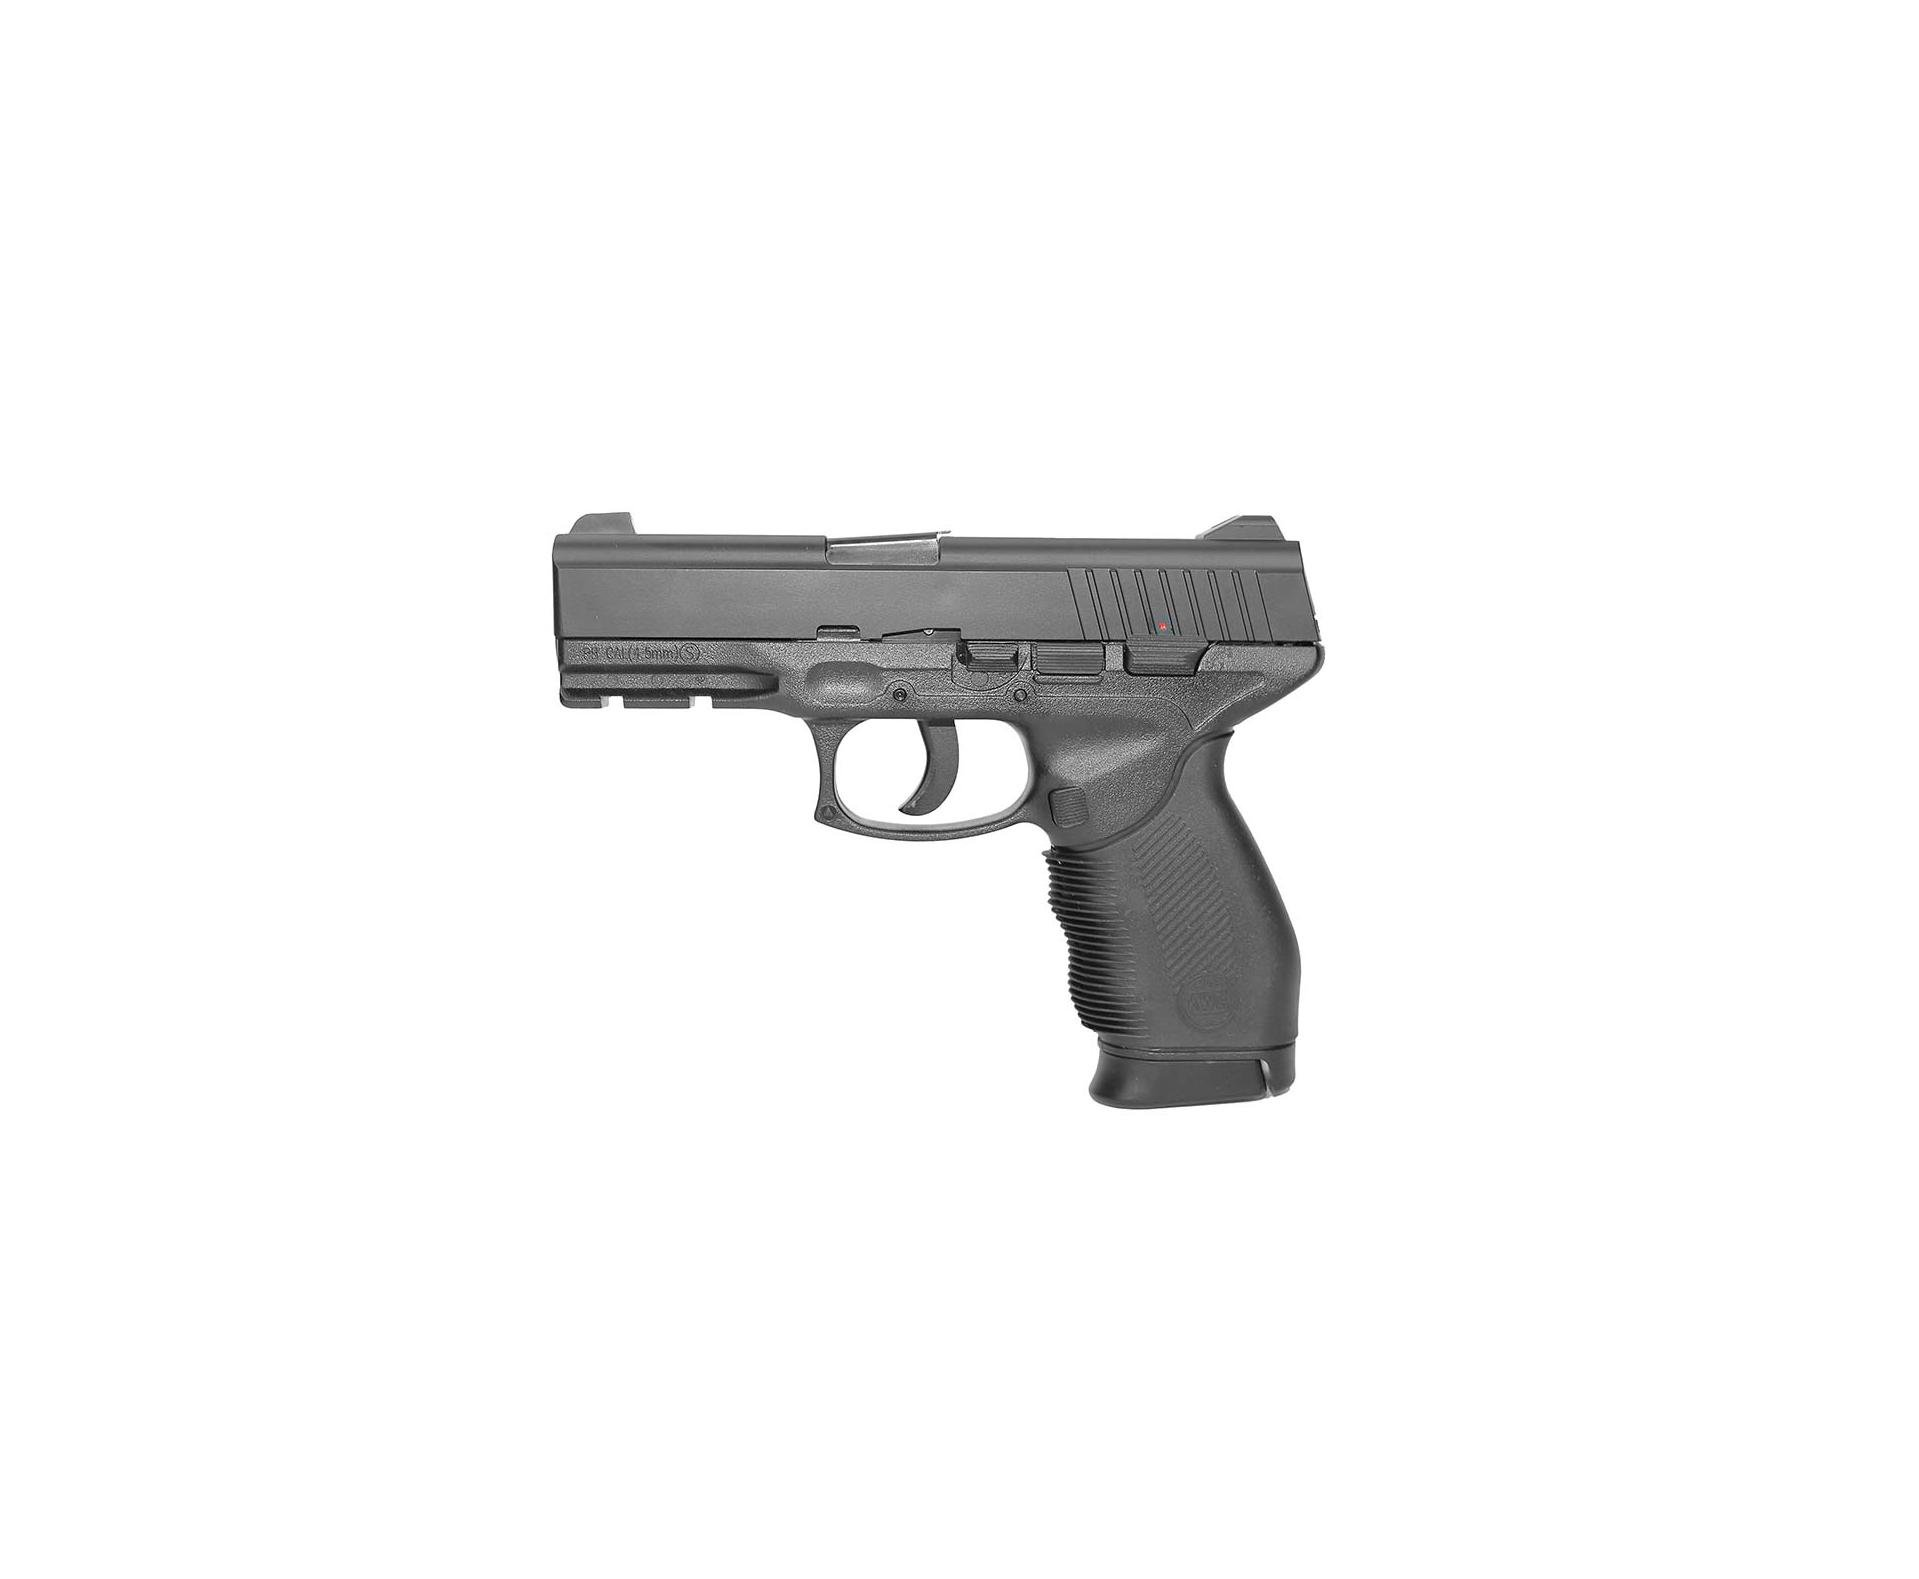 Pistola De Pressão Gas Co2 24/7 4,5mm Kwc